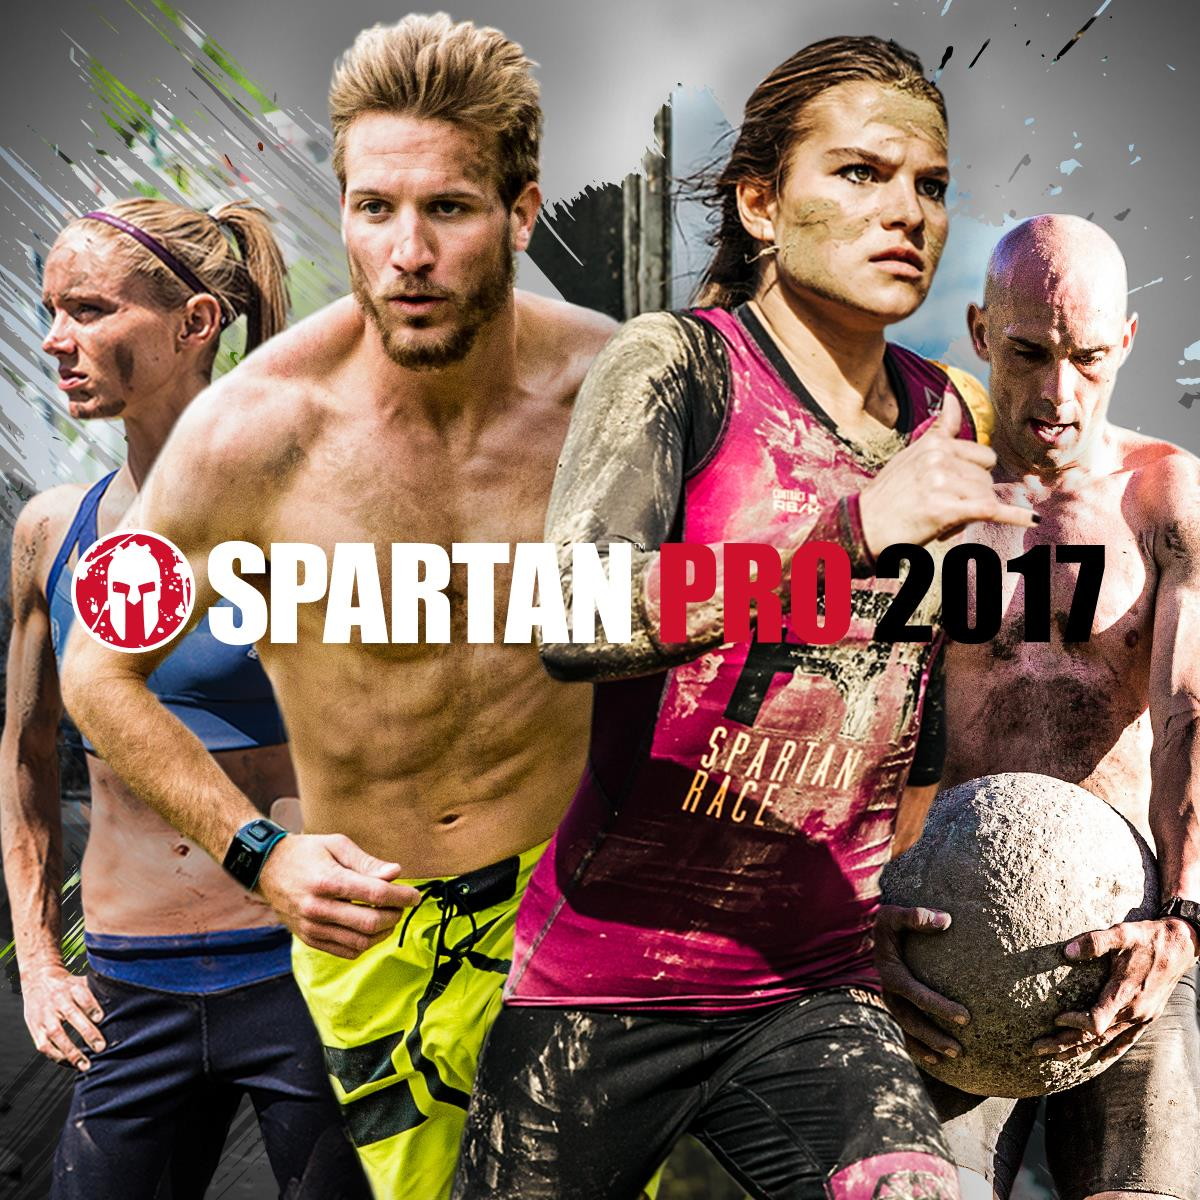 Spartan Race Announces 2017 Pro Team Mud Run Ocr